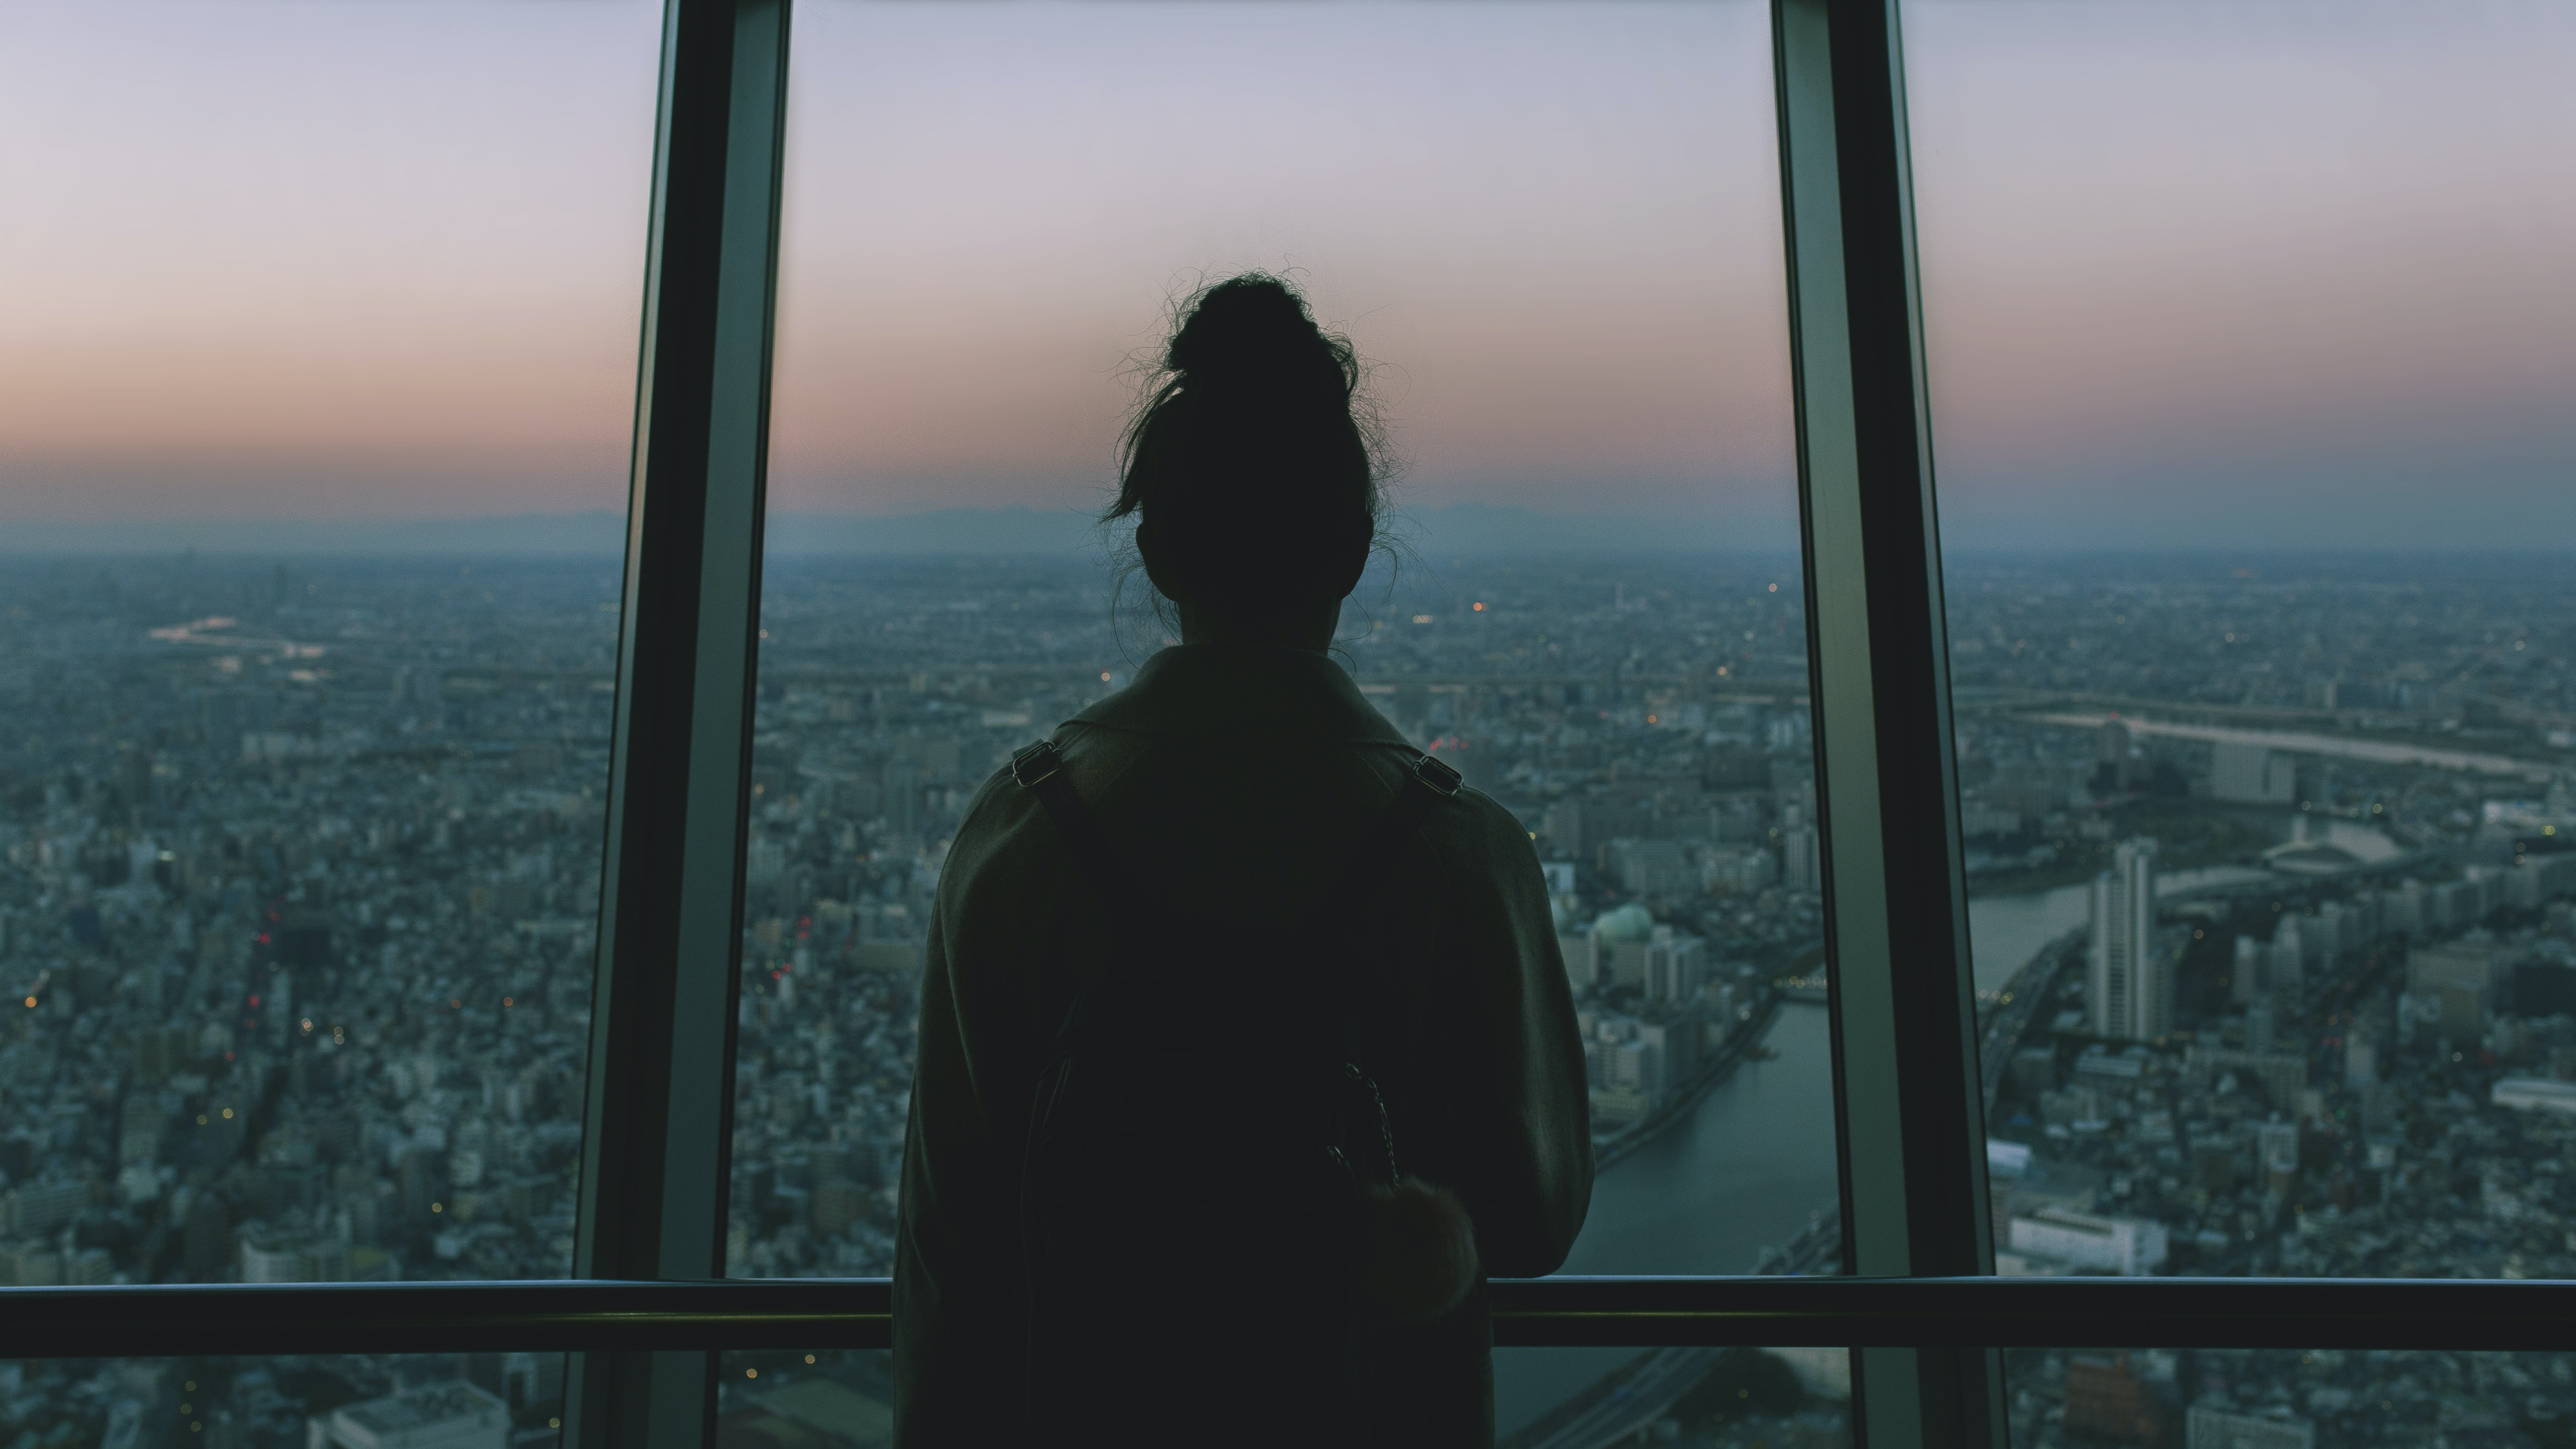 A woman's silhouette looking out into the city during sunset at the Tokyo Skytree